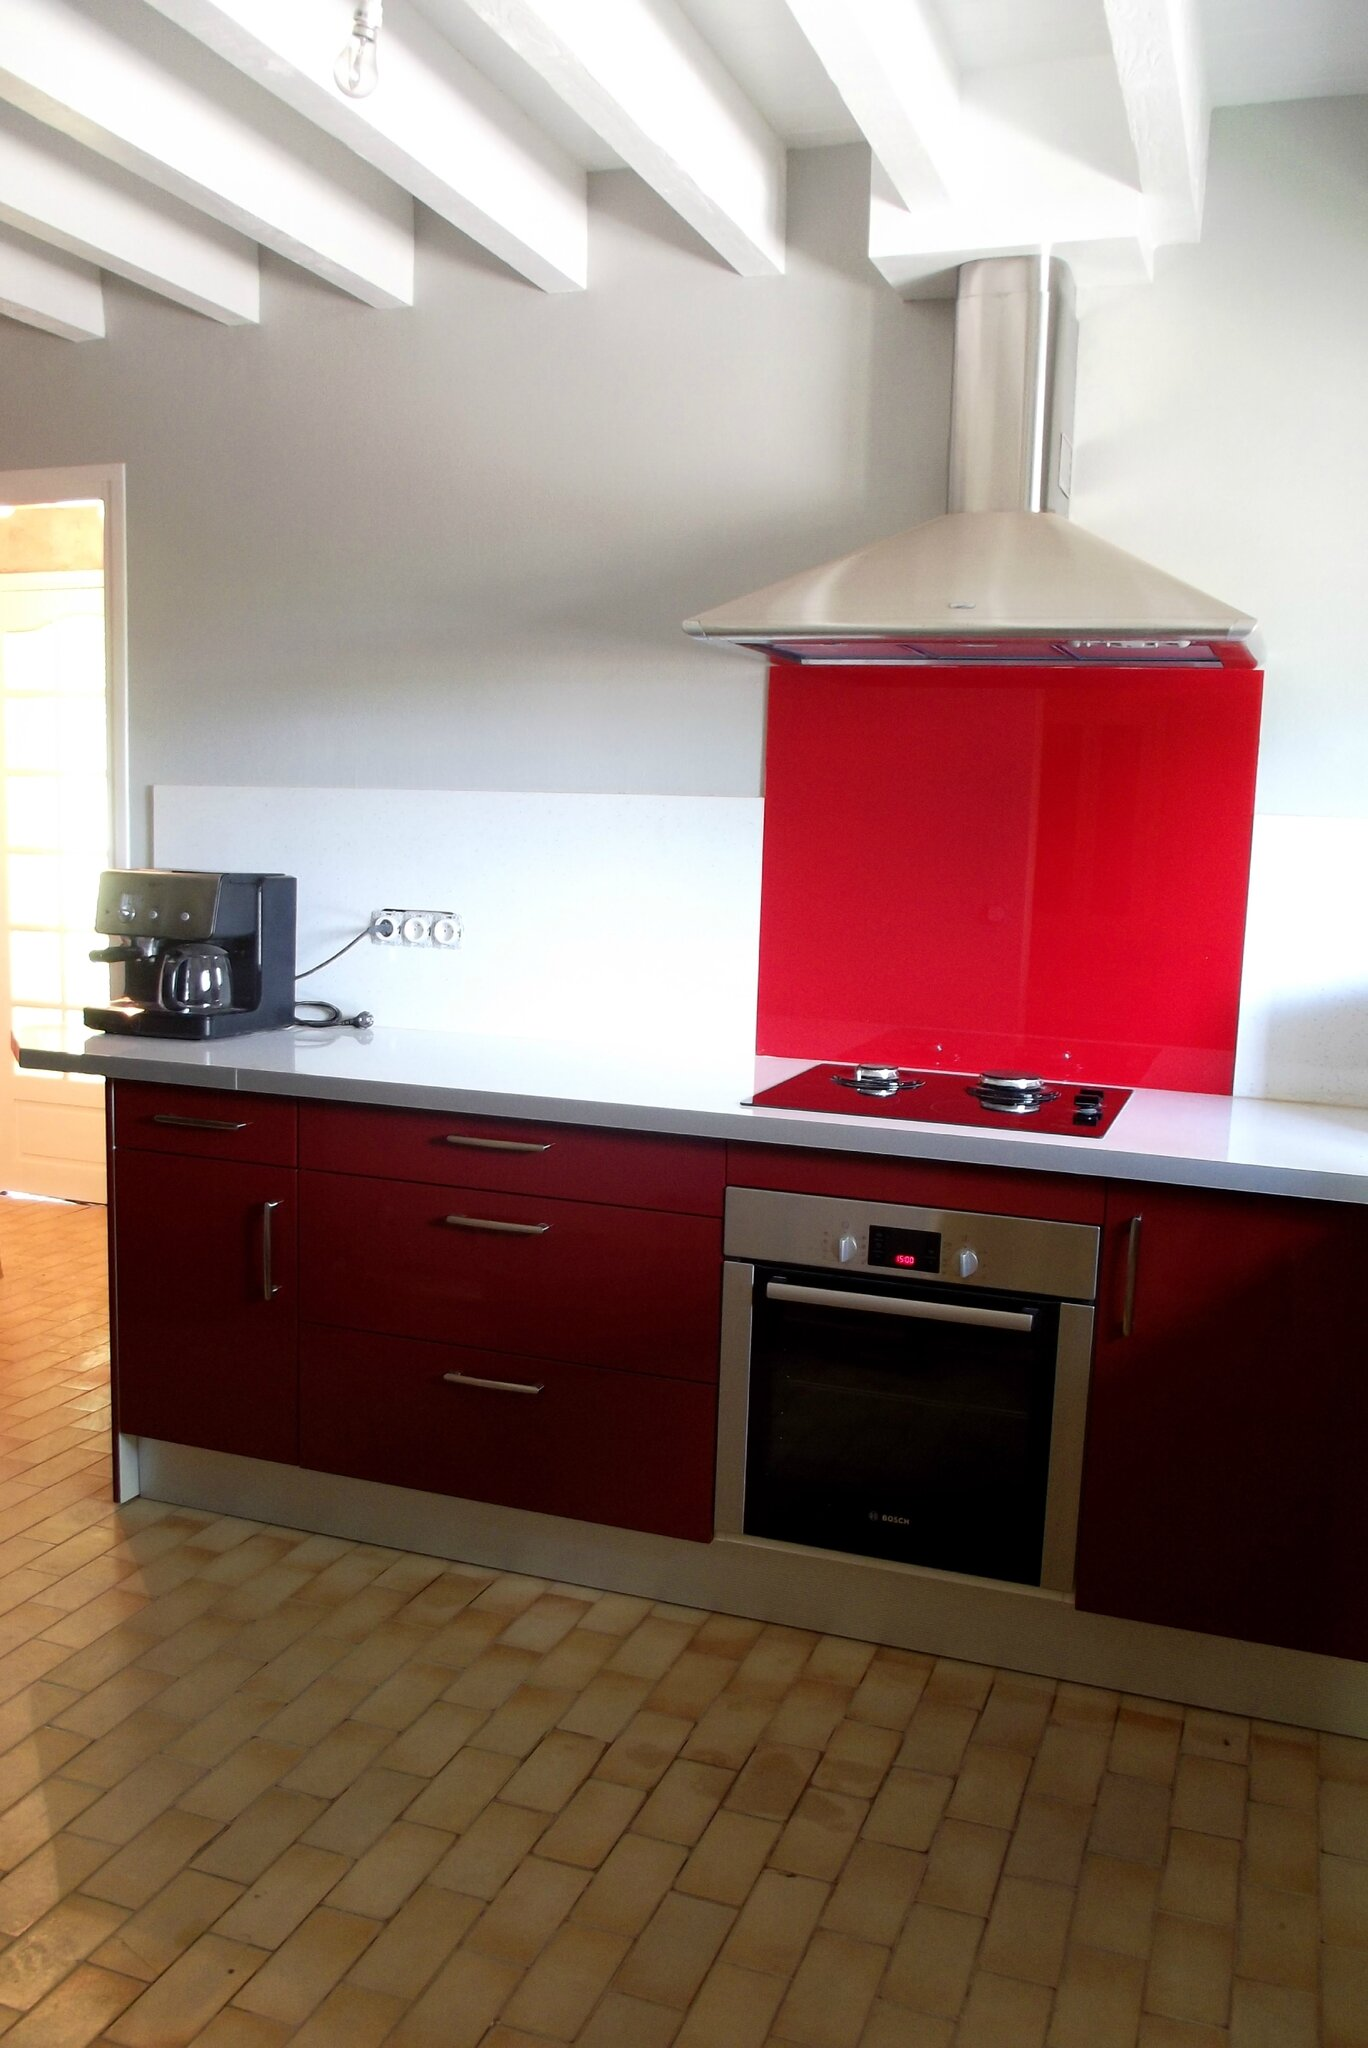 Cuisine quipe bordeaux location immobilier bordeaux 84 for Appartement meuble bordeaux